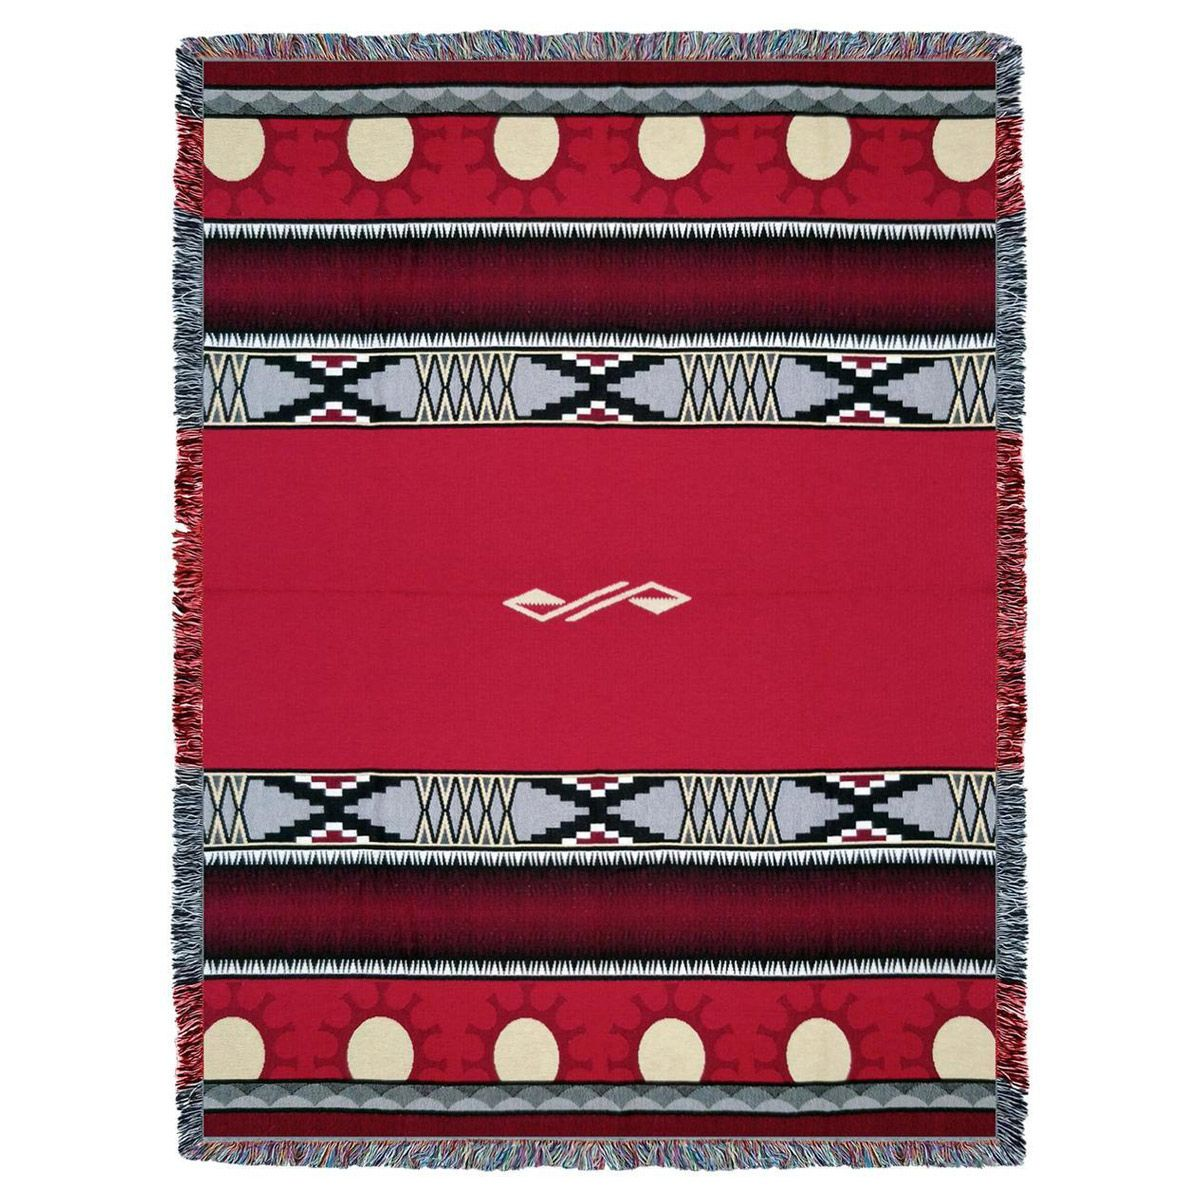 Concho Springs Red Tapestry Throw